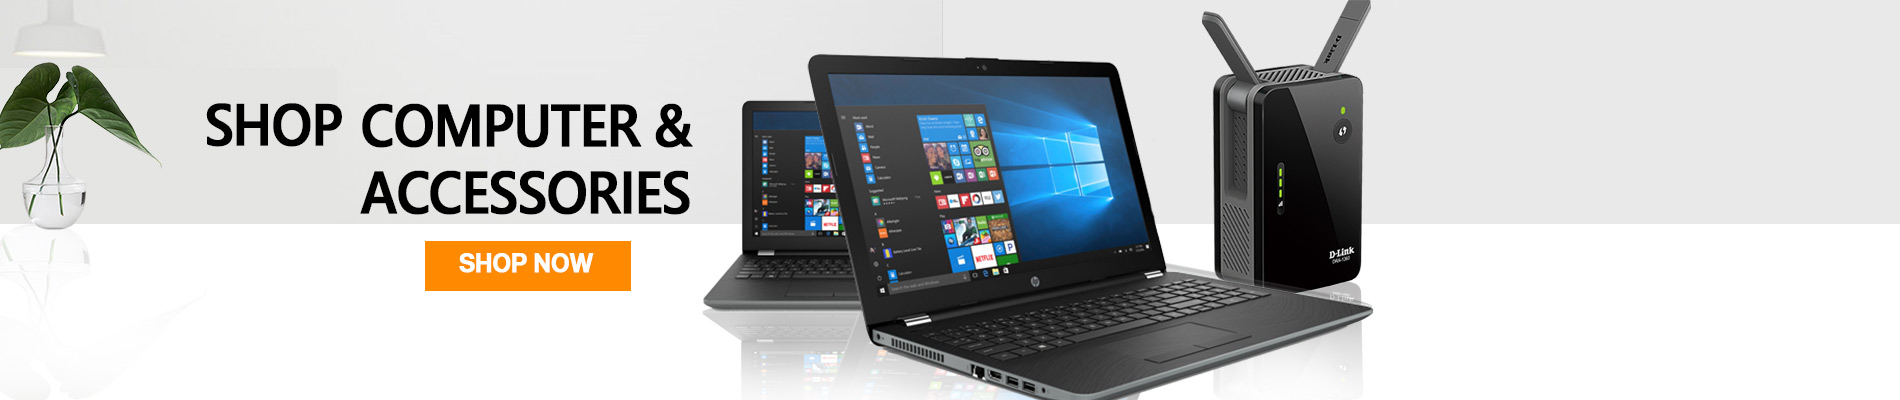 Mobile, Computer, Laptops and more